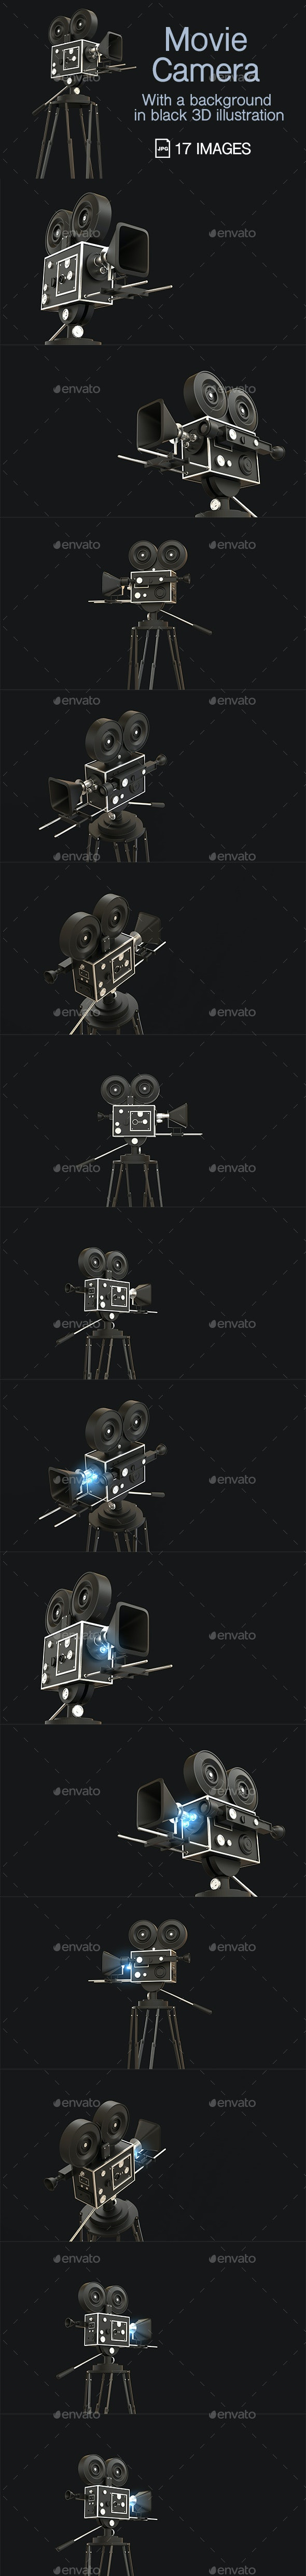 Movie Camera With A Background in Black 3D Illustration - Technology 3D Renders